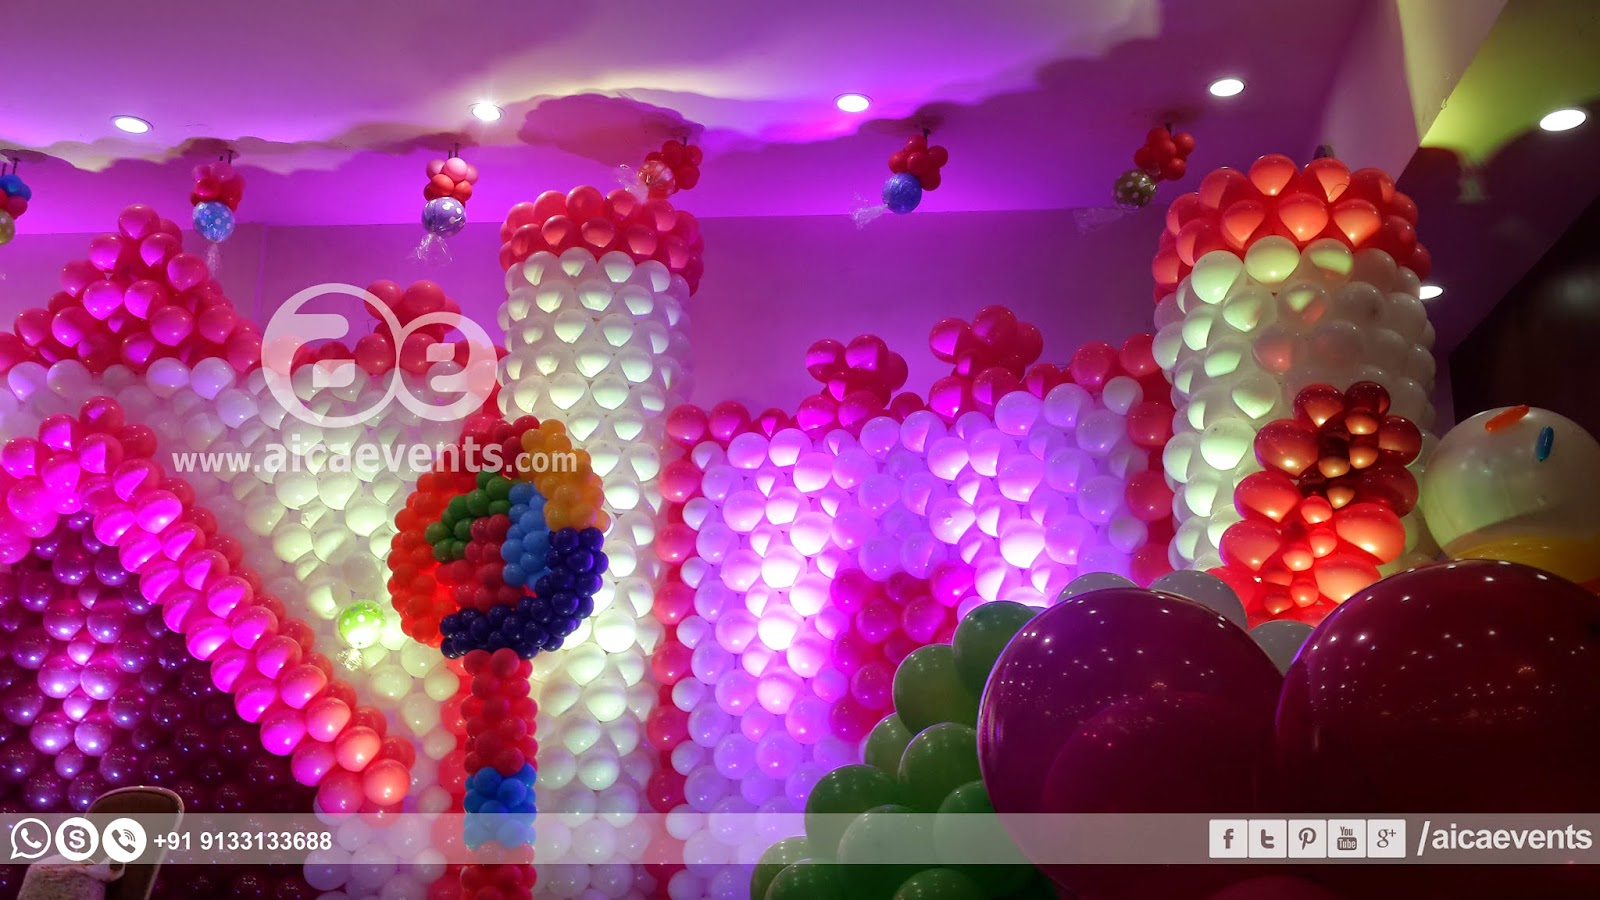 Aicaevents india castle with balloon wall decoration for Balloon decoration on wall for birthday